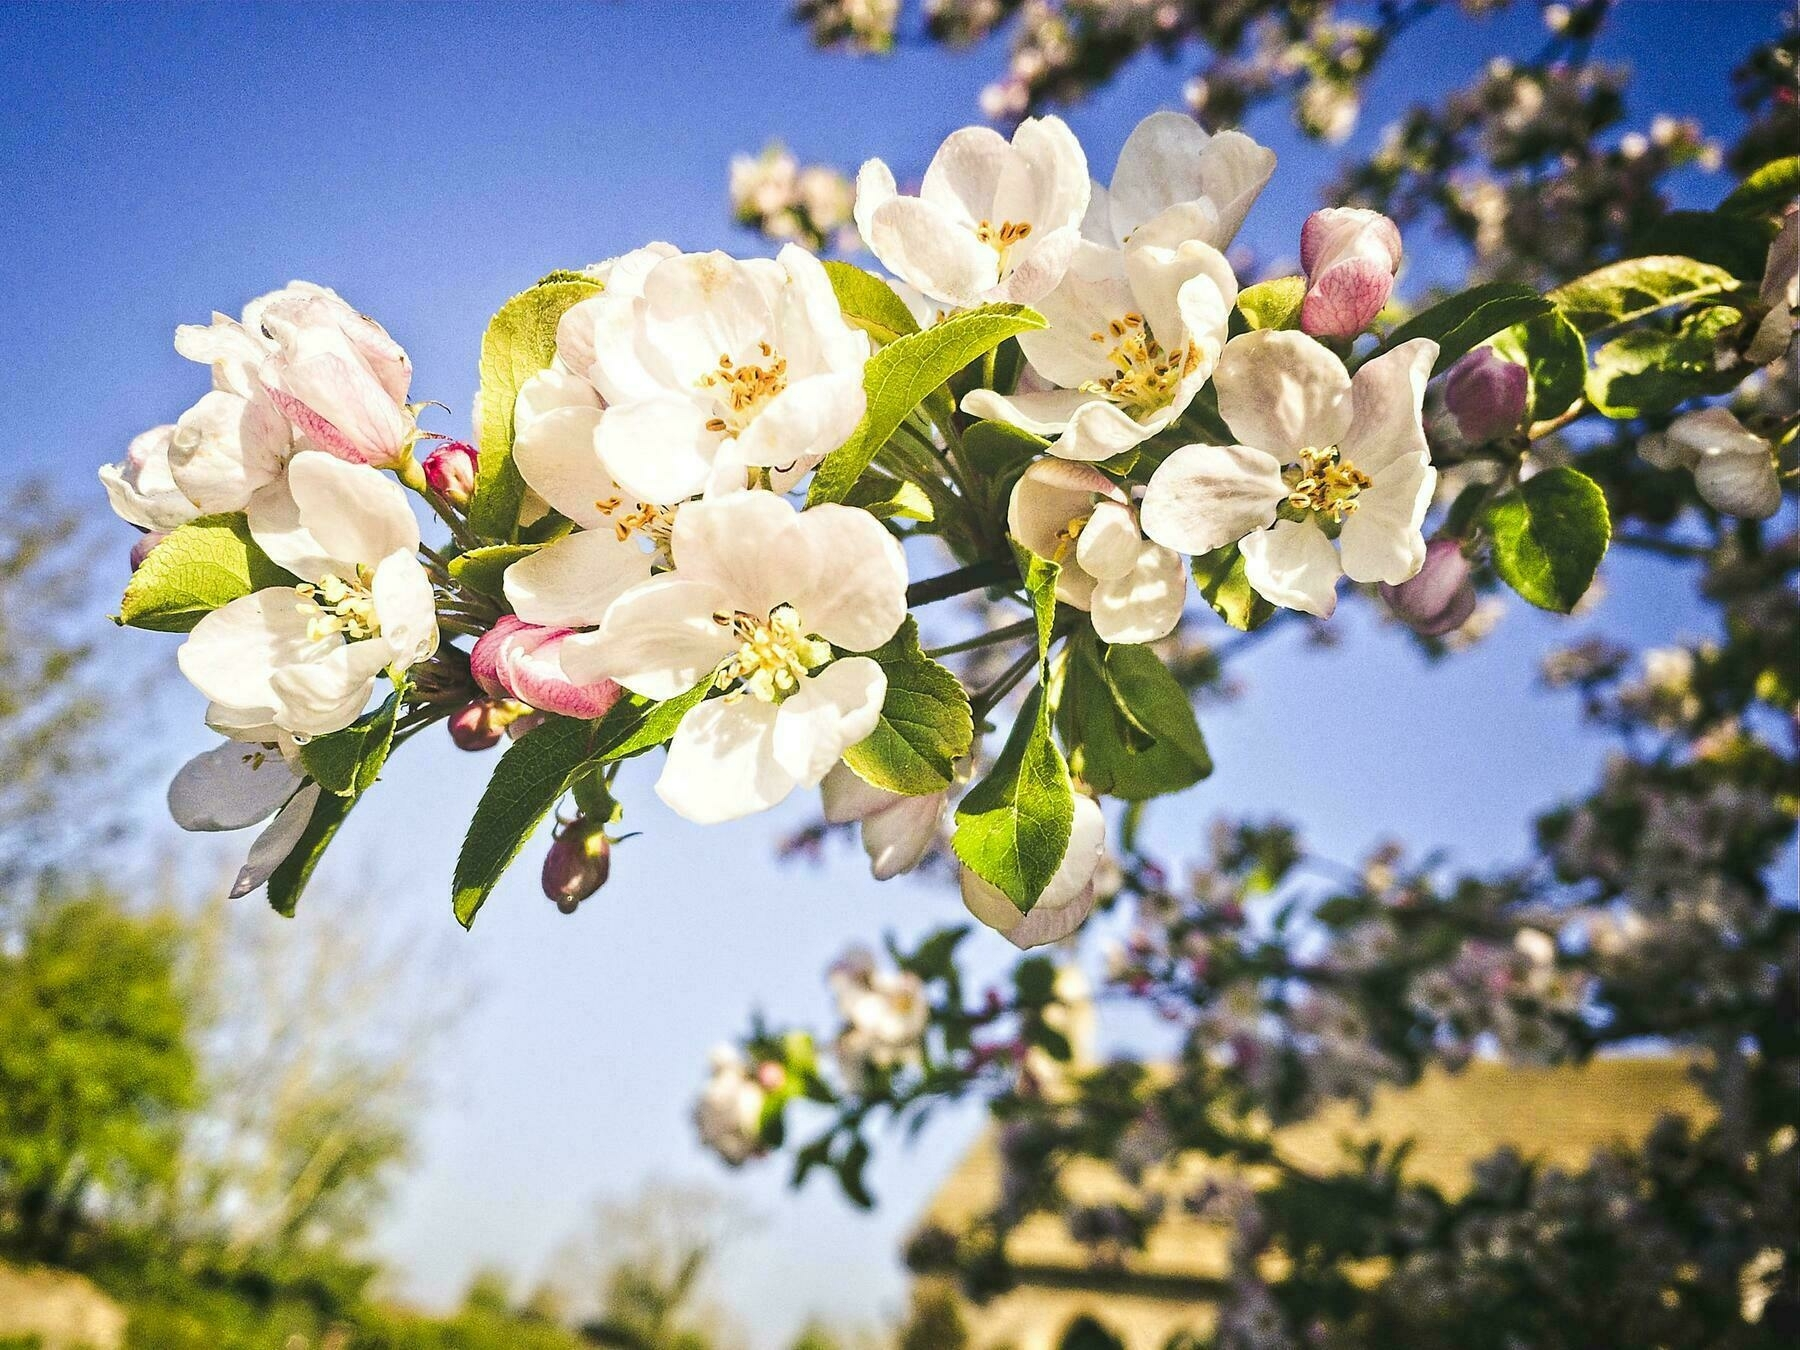 photo of some apple blossom